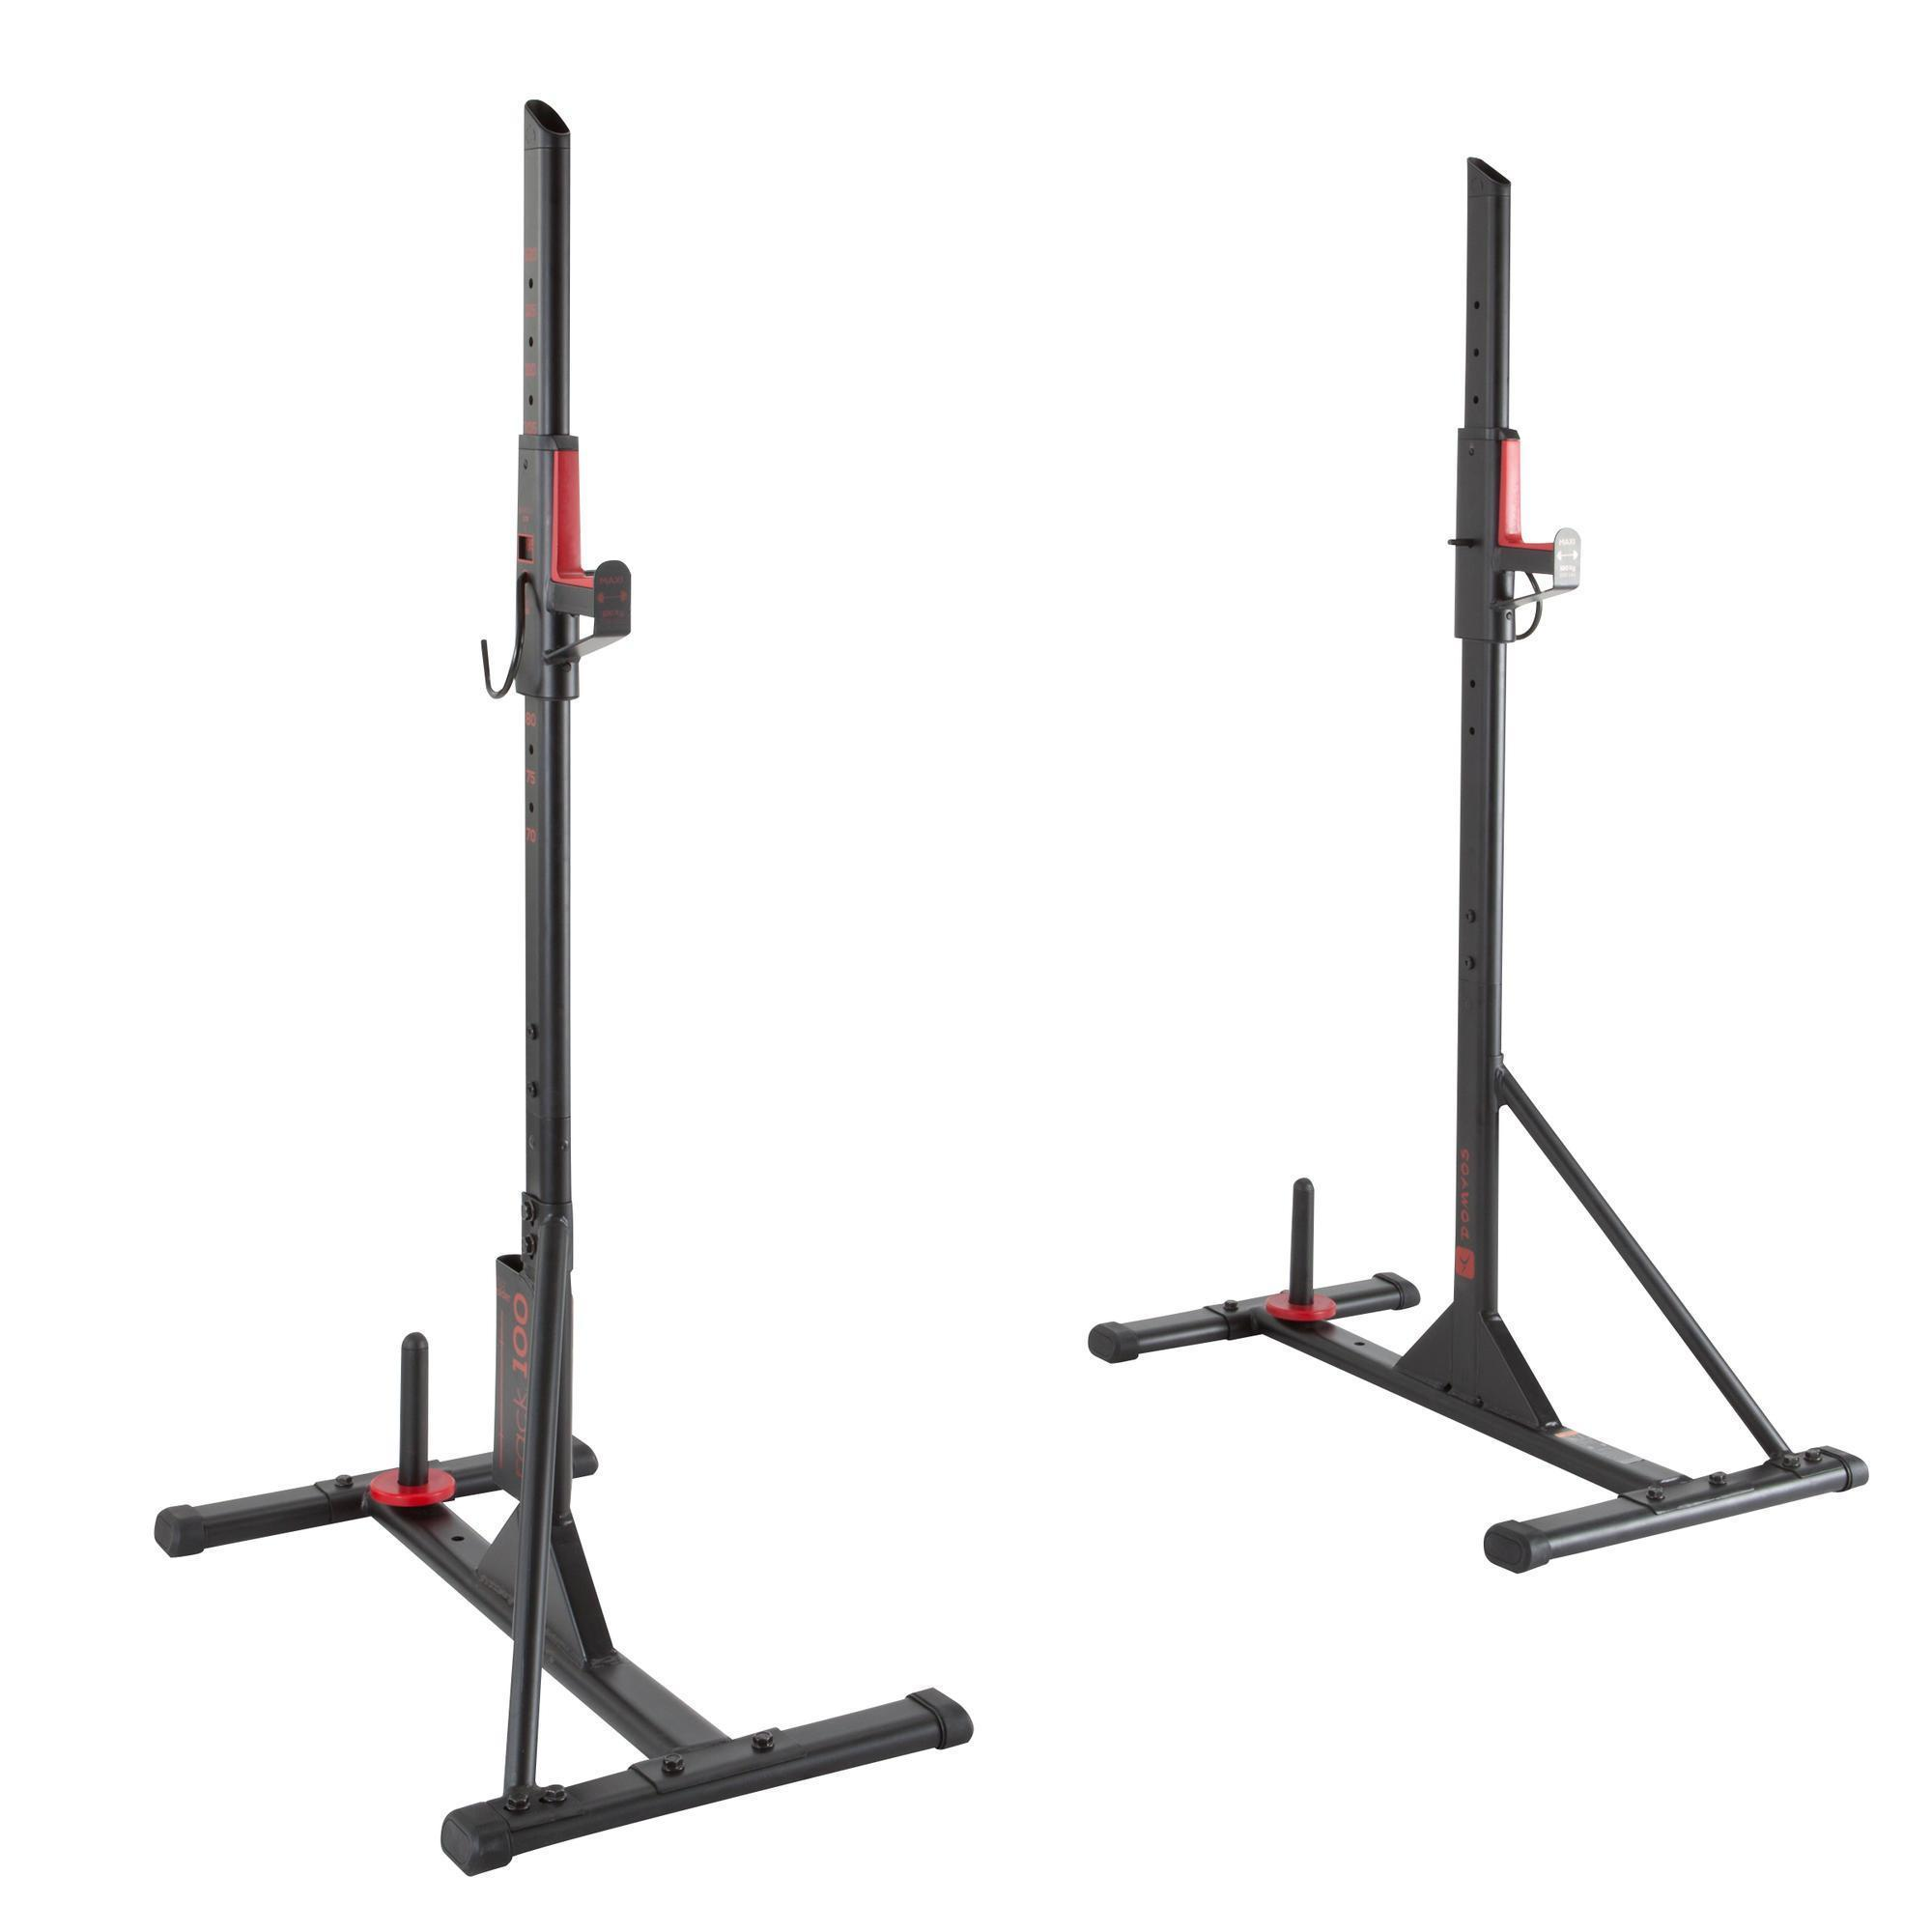 weight vest rack torsonator plates shop packages power bars up bench fid kg half chin img olympic dip storage barbell weights